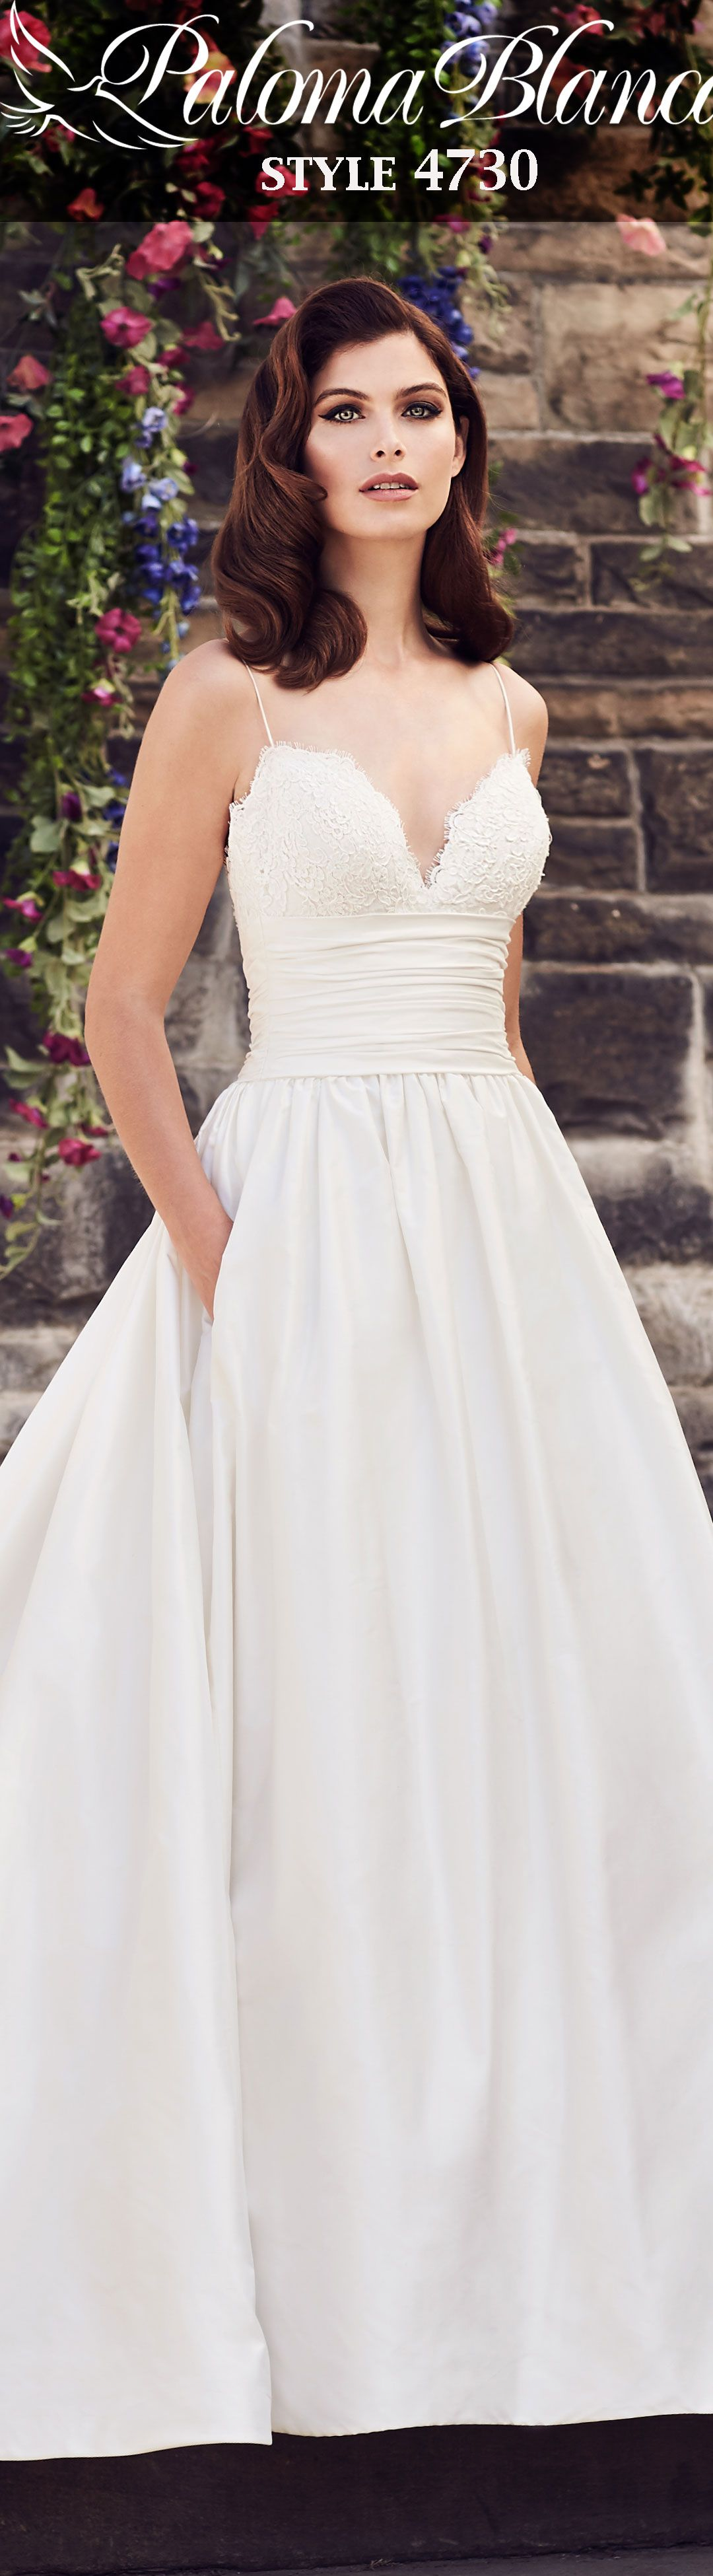 Silk A-Line Wedding Dress - Style #4730   Fabric covered button ...